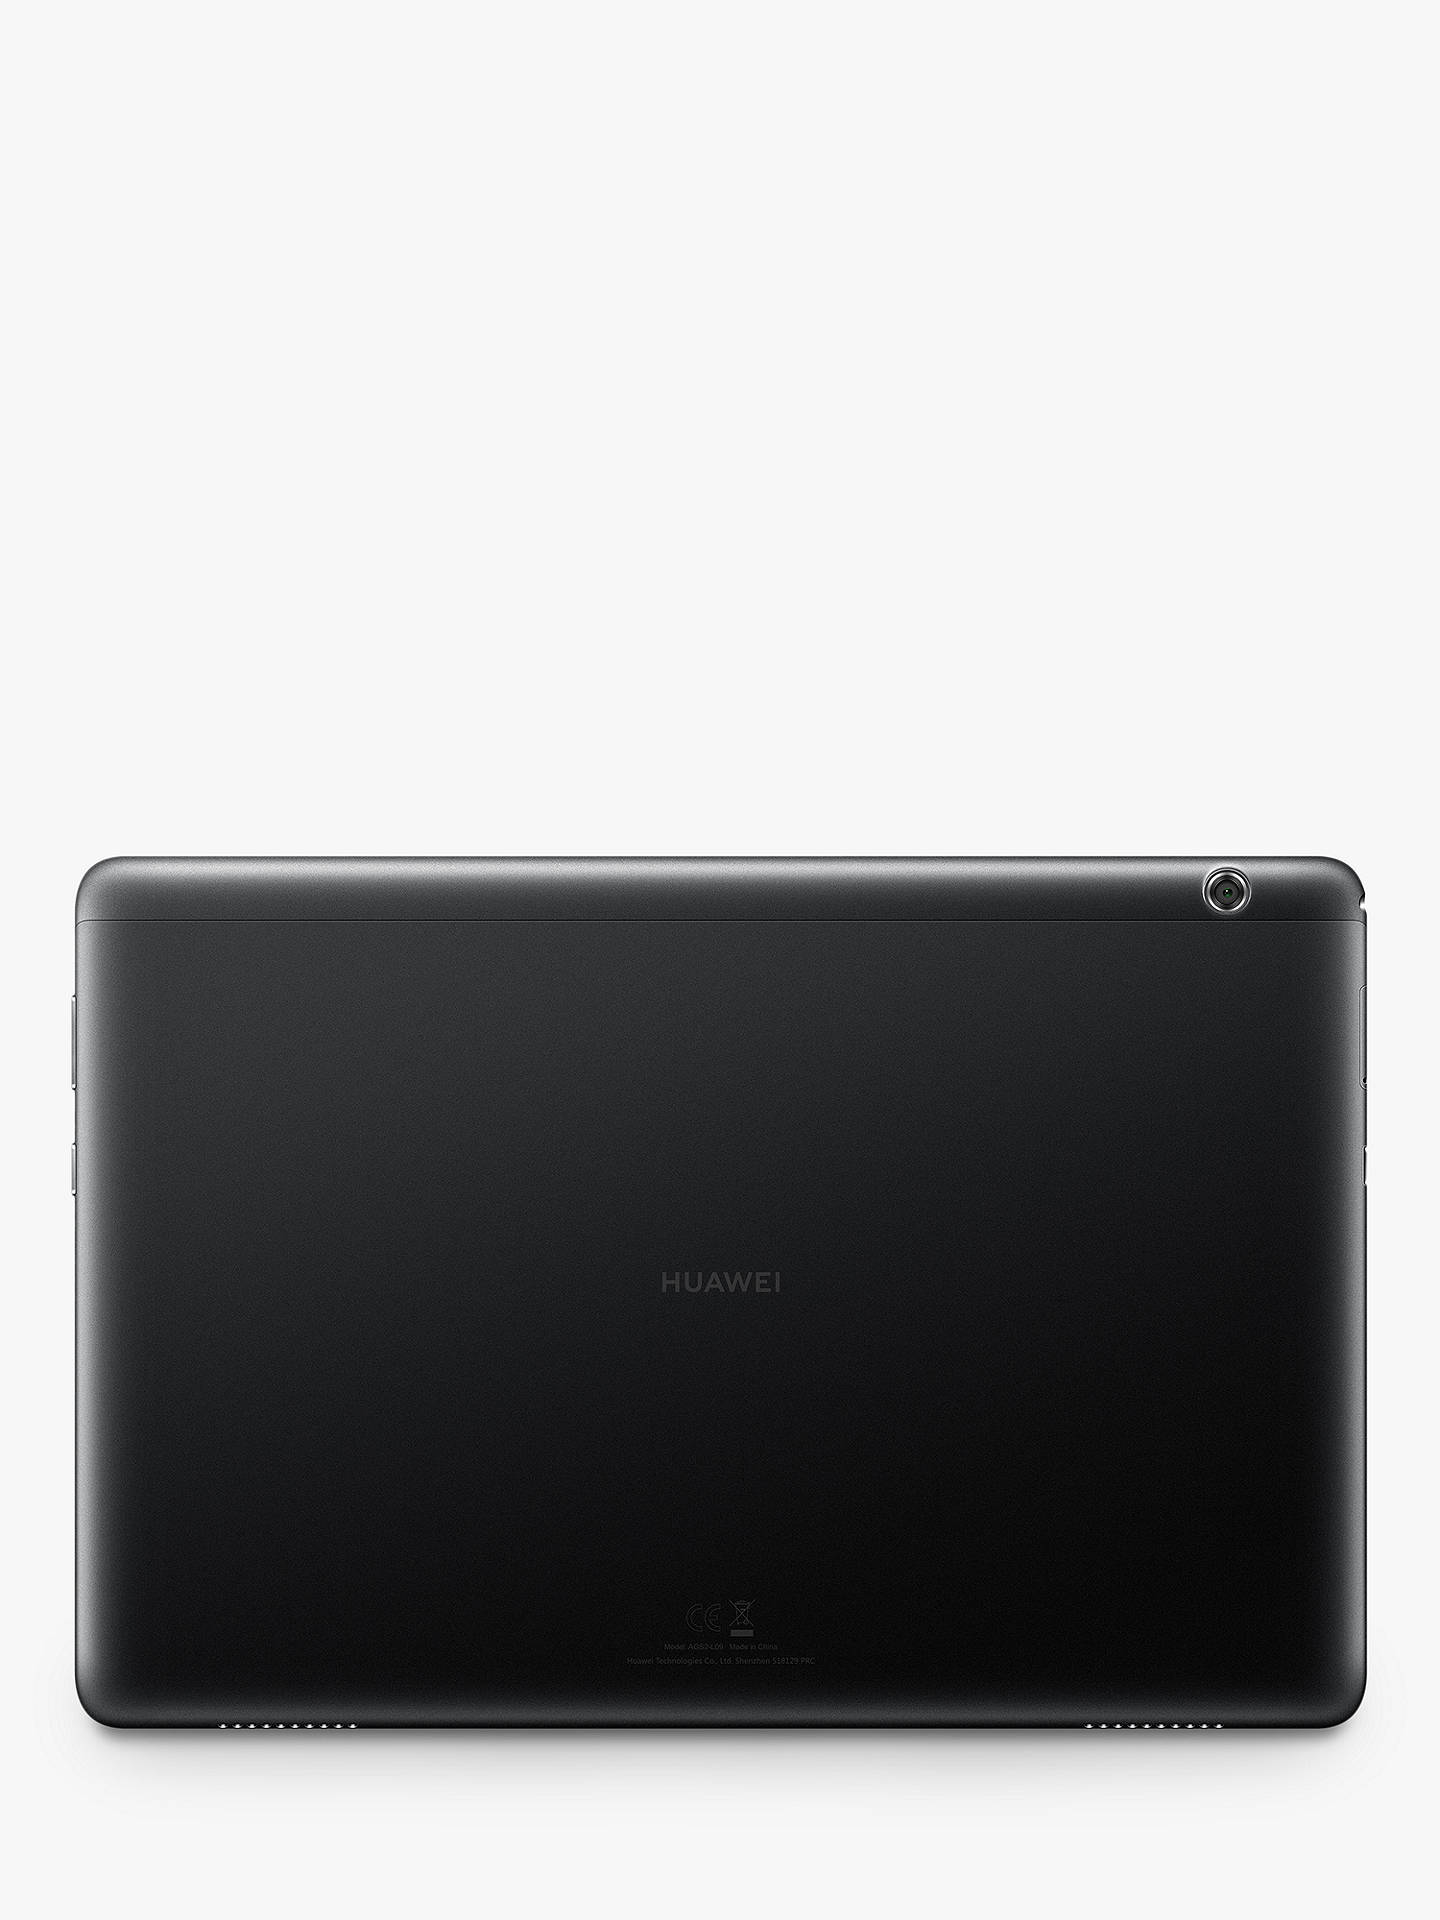 "Buy Huawei MediaPad T5 10 (2019) Tablet, Android, Kirin 659, 4GB RAM, 64GB Storage, 10.1"", Black Online at johnlewis.com"